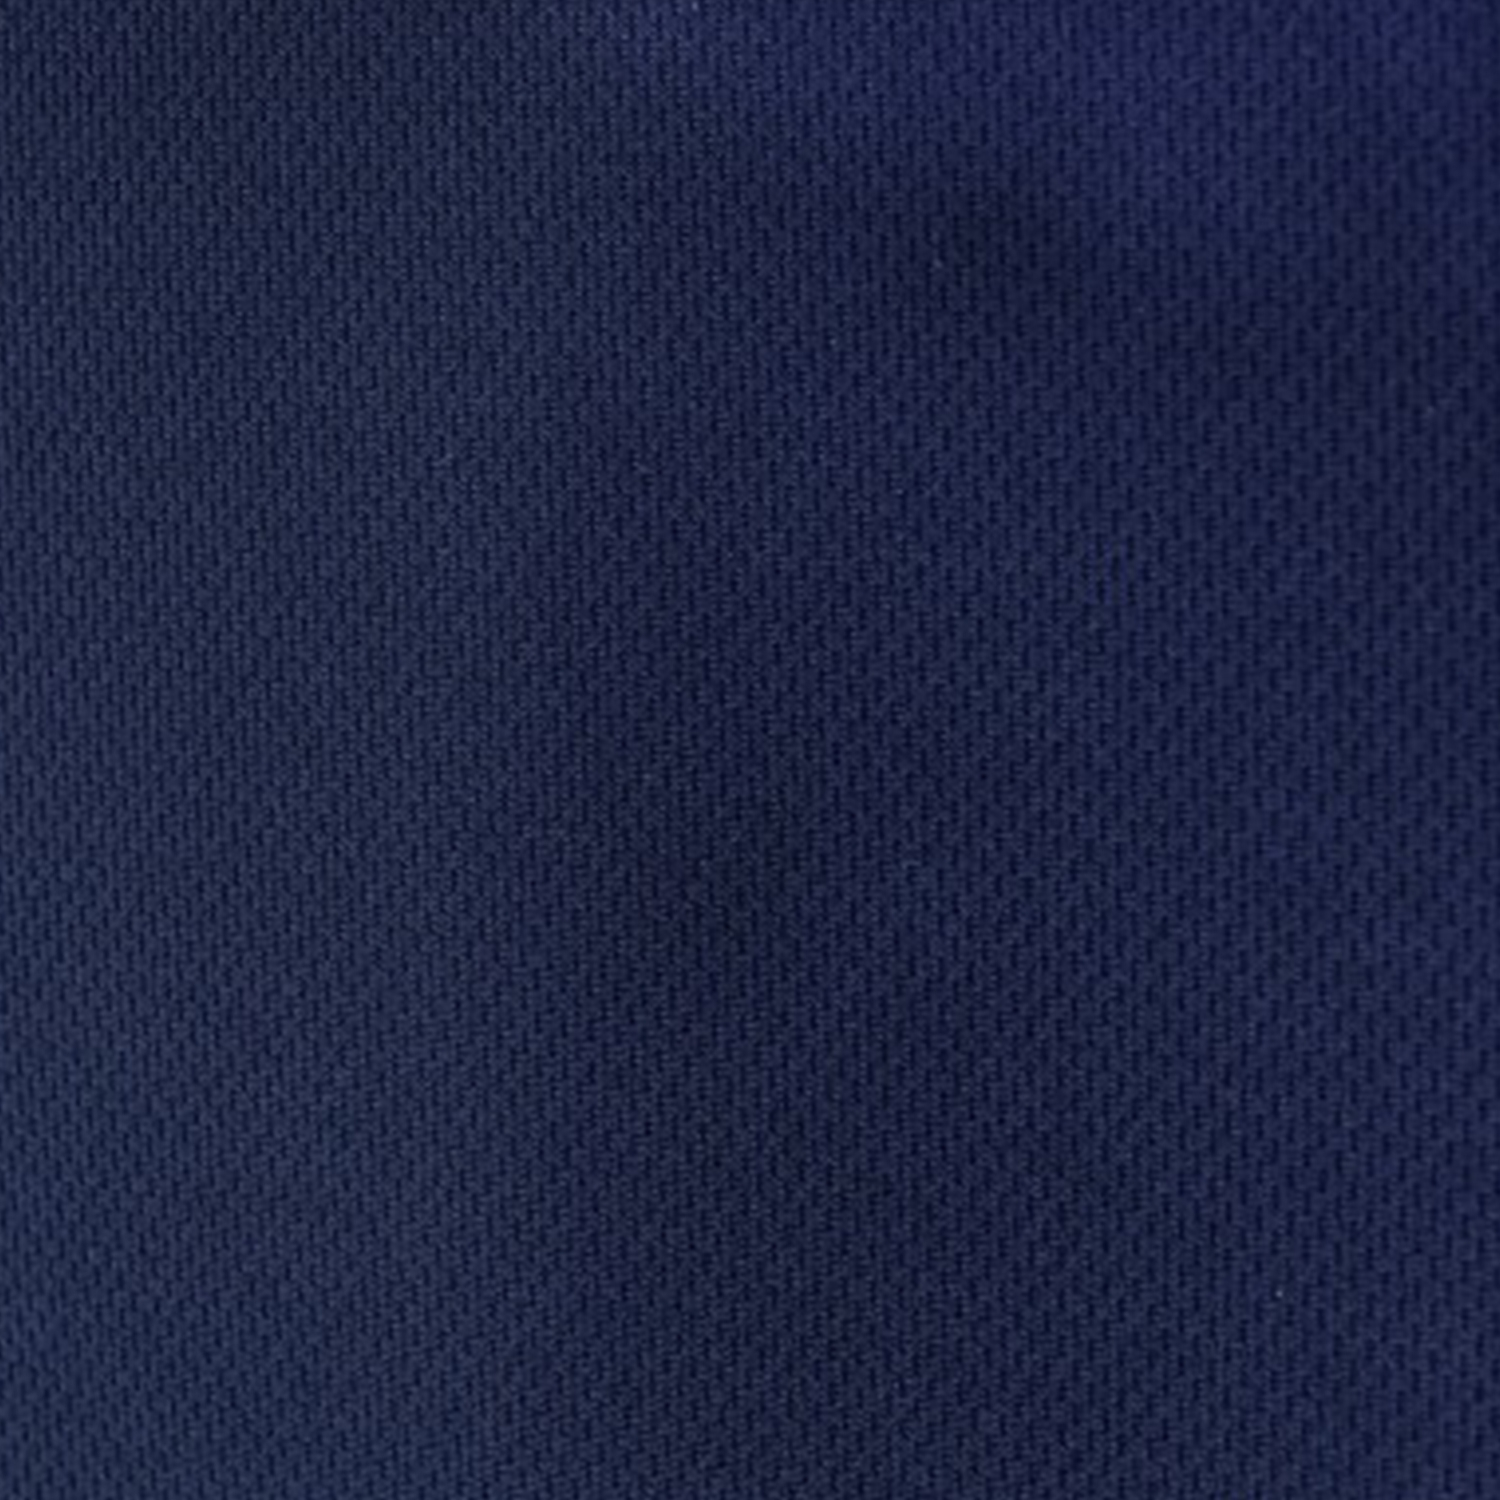 Navy Flat Back Dimple Mesh Fabric